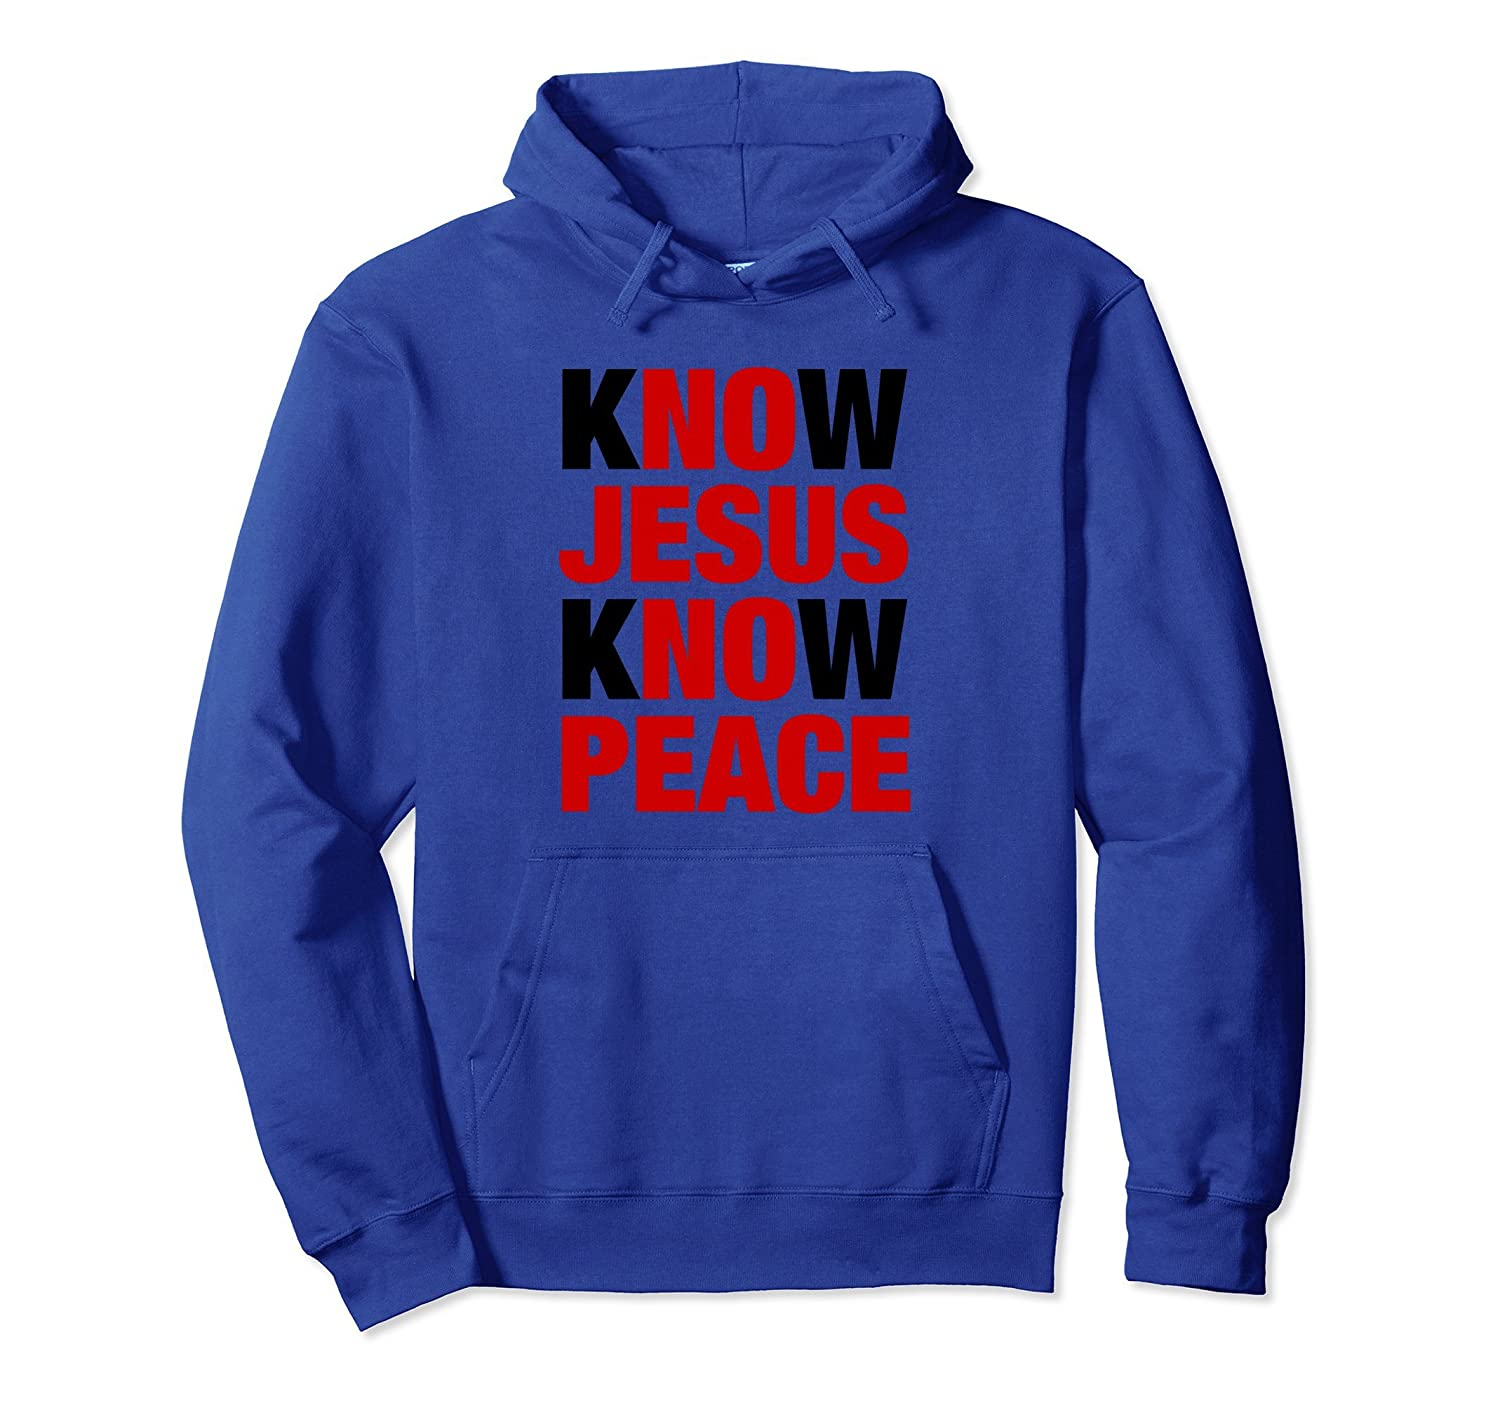 Know Jesus Know Peace | Christian Hoodie S000112-alottee gift